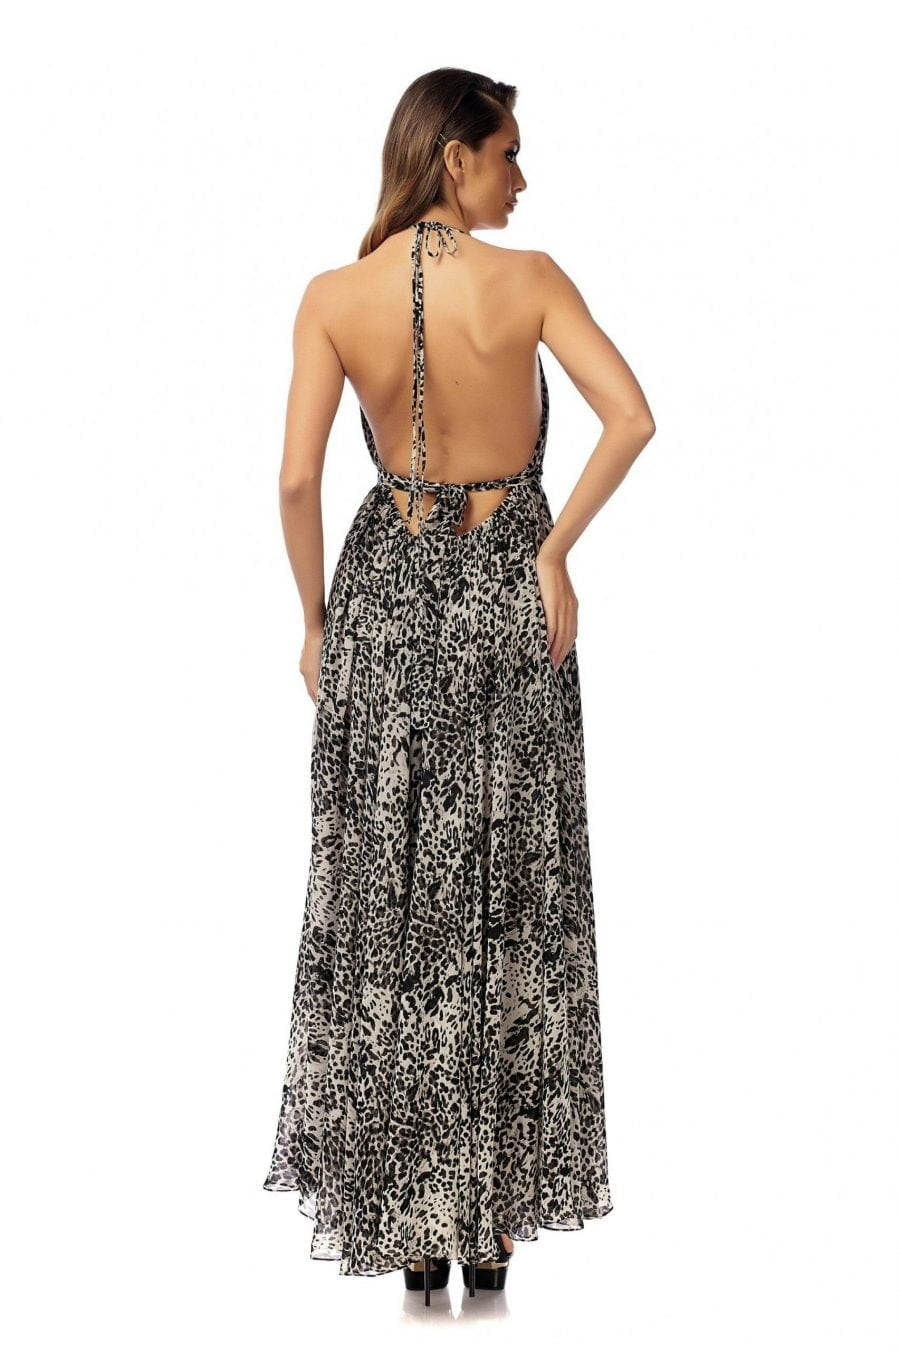 Evning Open Back Dress